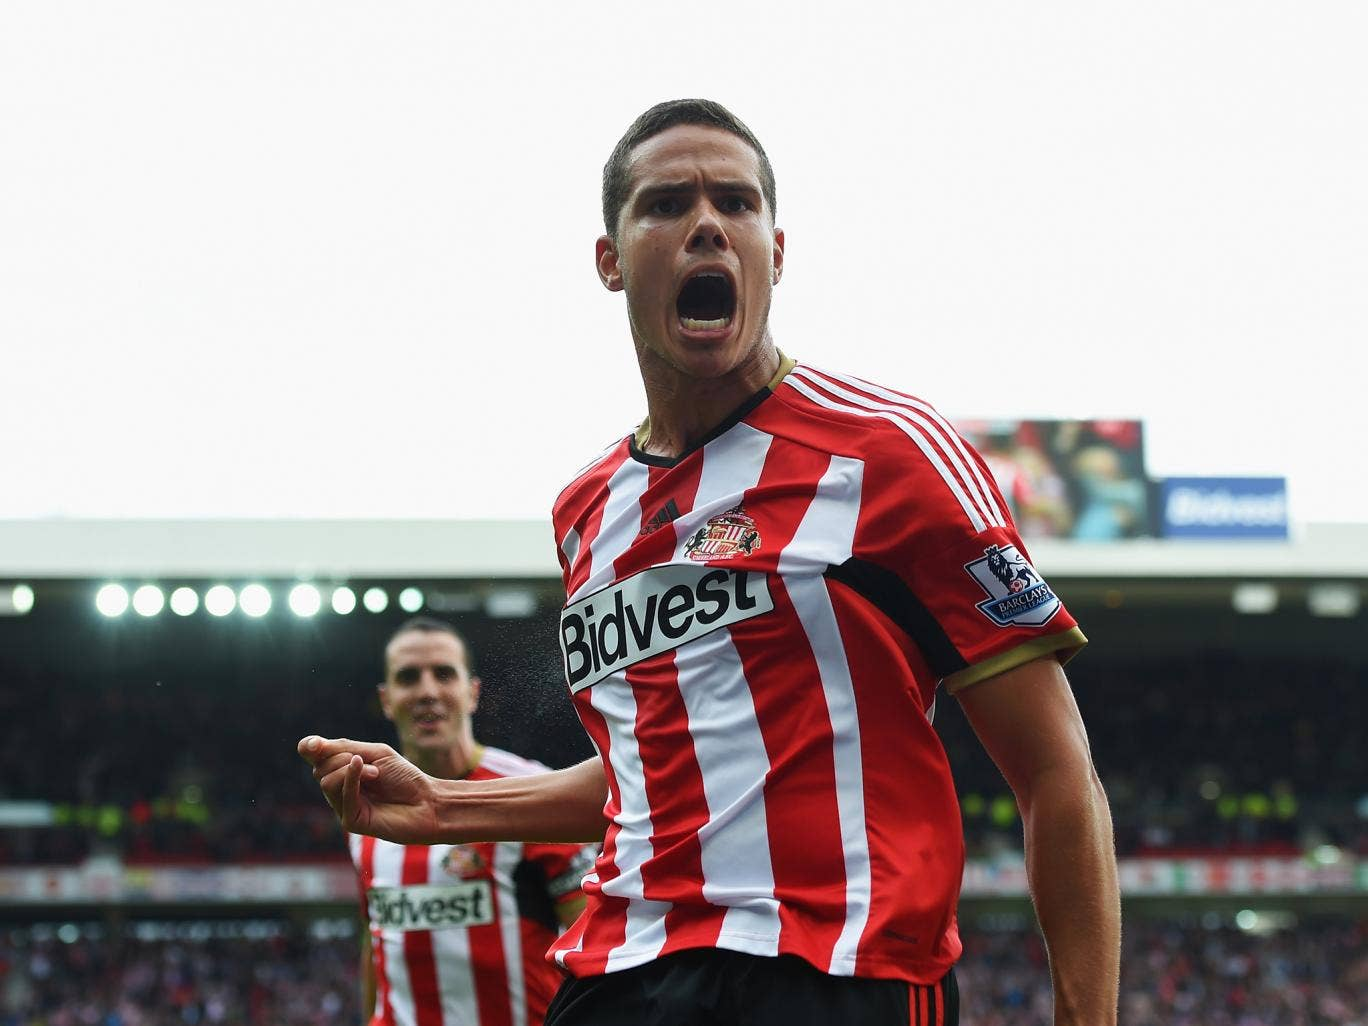 Jack Rodwell of Sunderland celebrates scoring his goal during the Premier League match between Sunderland and Manchester United